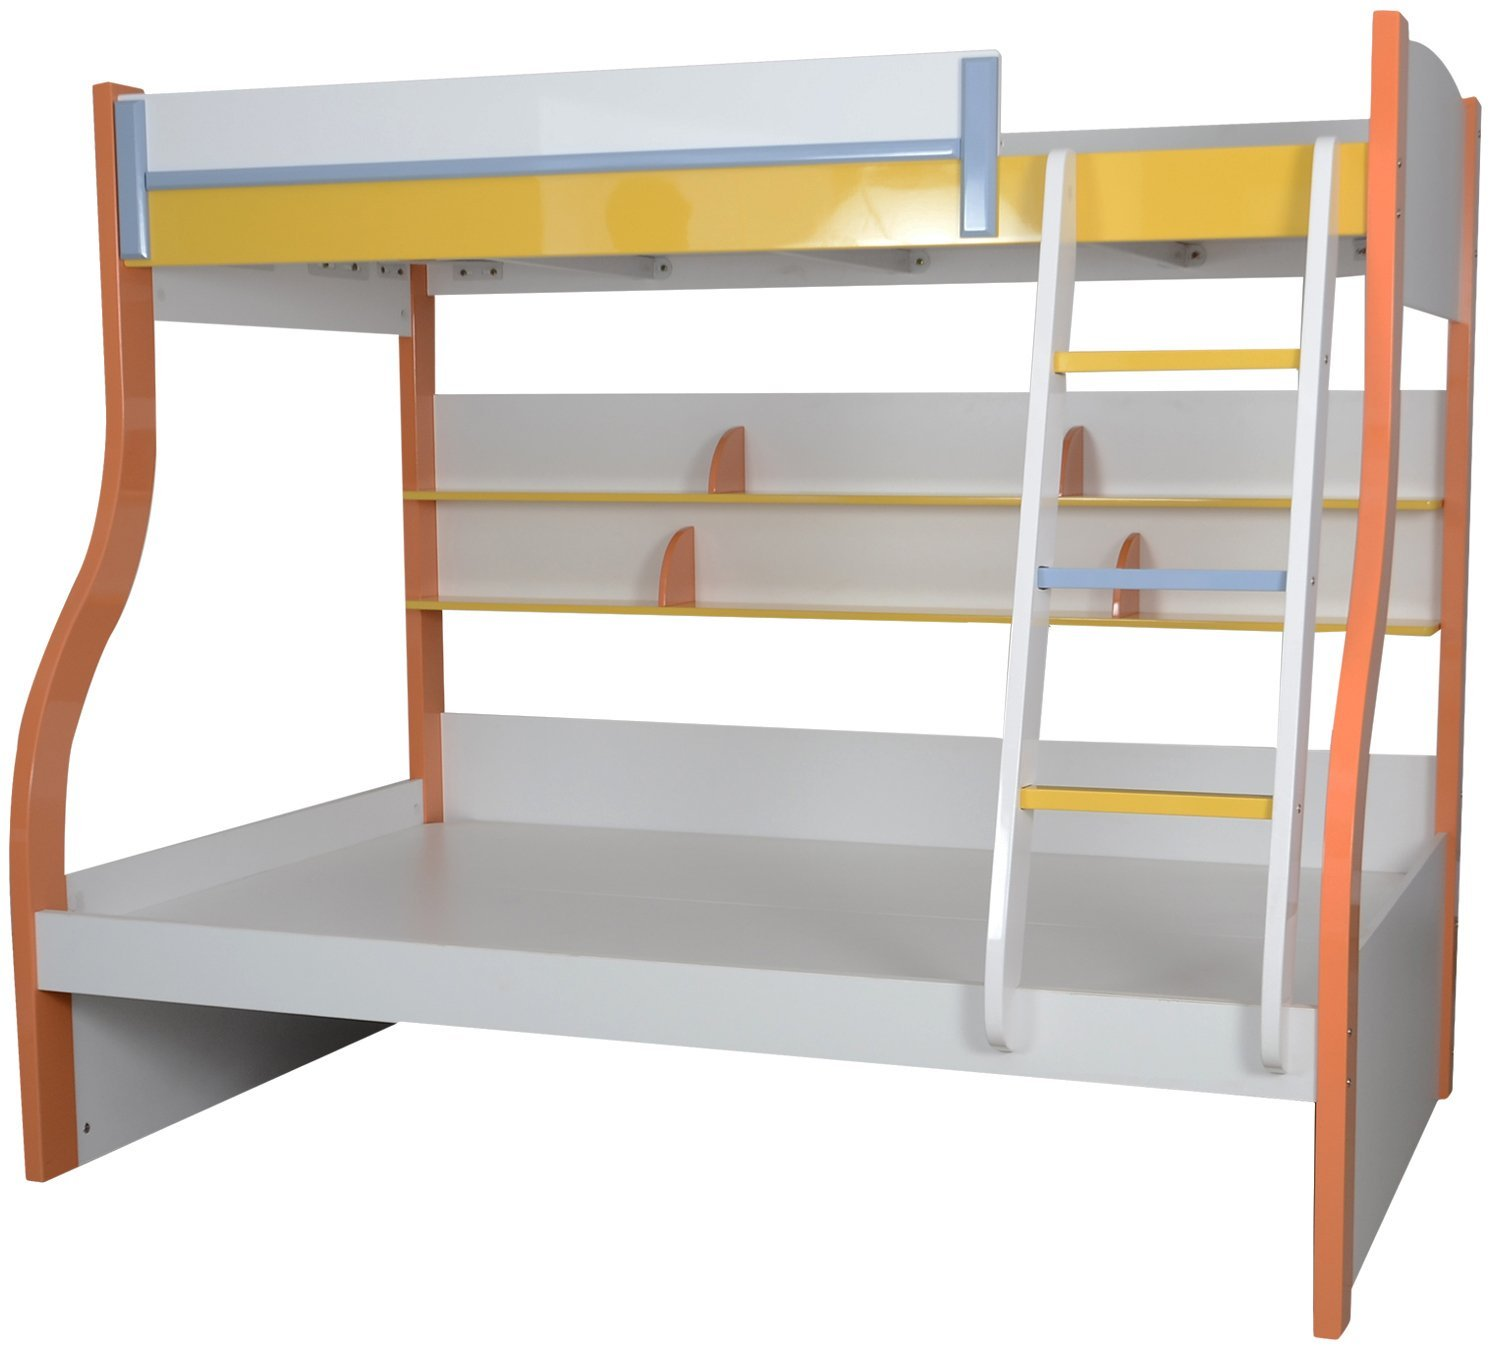 Very Impressive portraiture of Buy Bunk beds for Kids online at Kids Kouch India with #AD861E color and 1500x1354 pixels